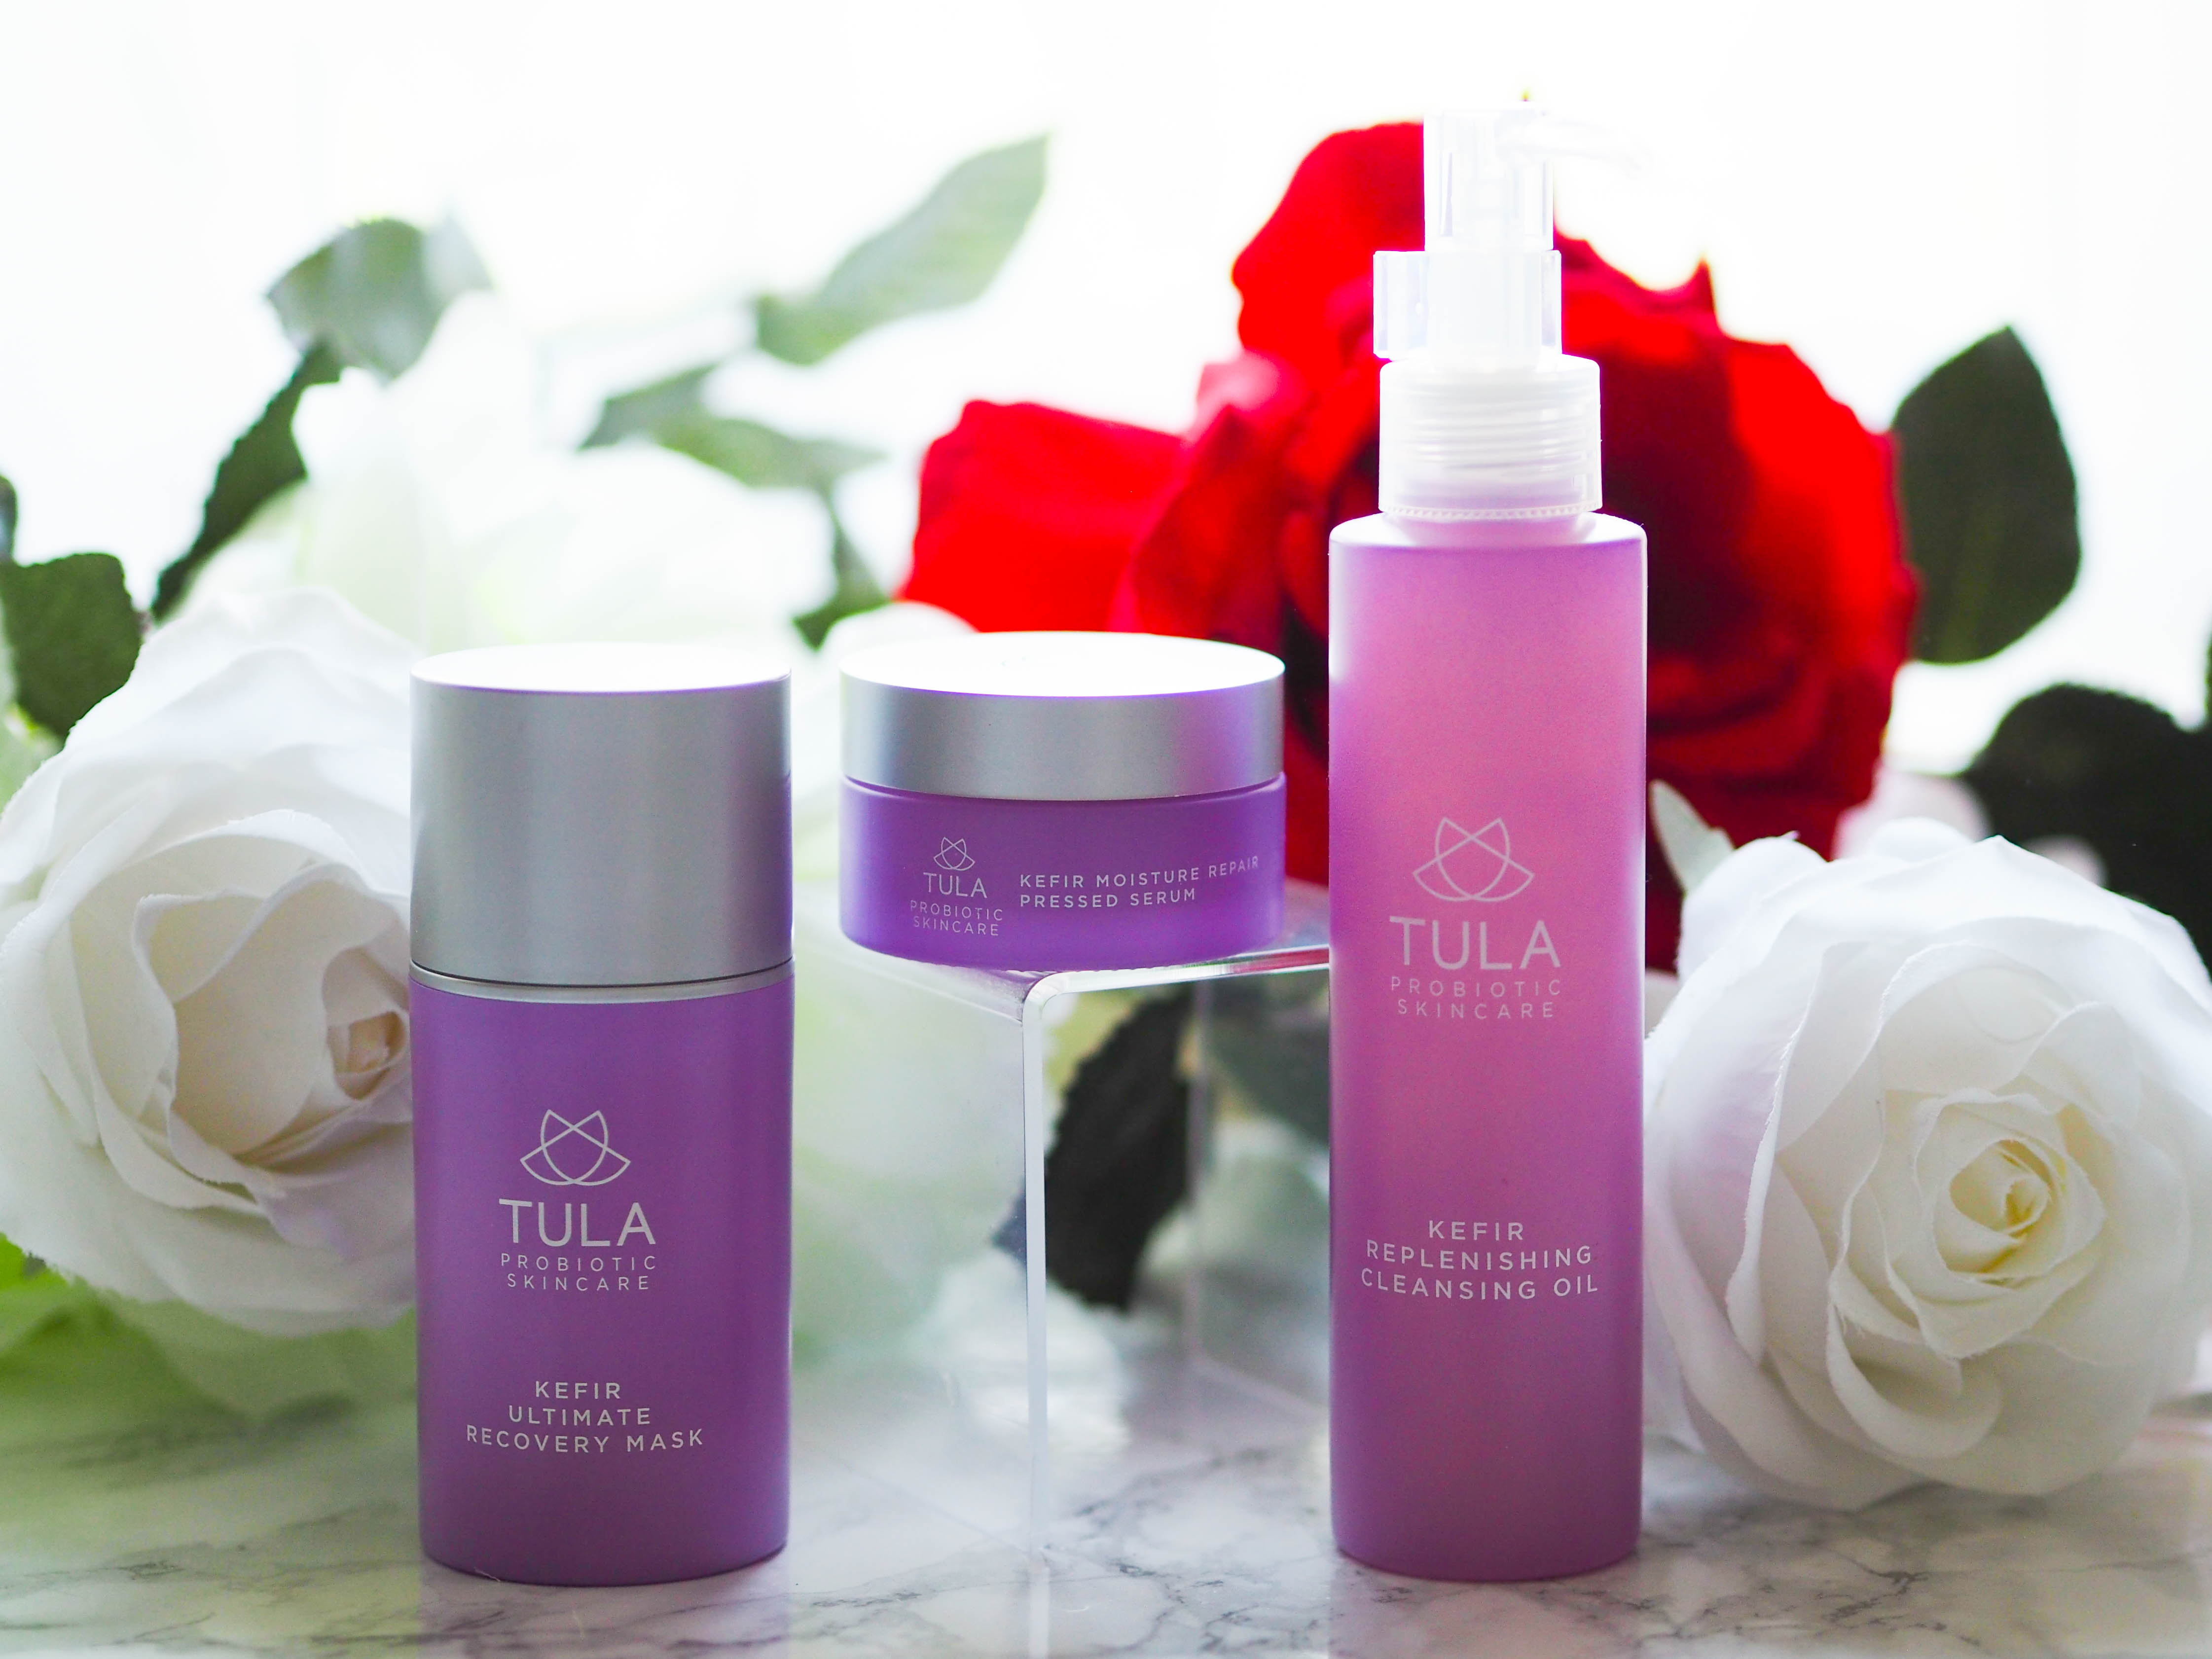 Tula Kefir Cleansing Oil Pressed Serum And Hydration Mask Beauty Black I Was Introduced To The Probiotic Skincare Range At Start Of Year So Impressed With It As Really Is A Lovely Products